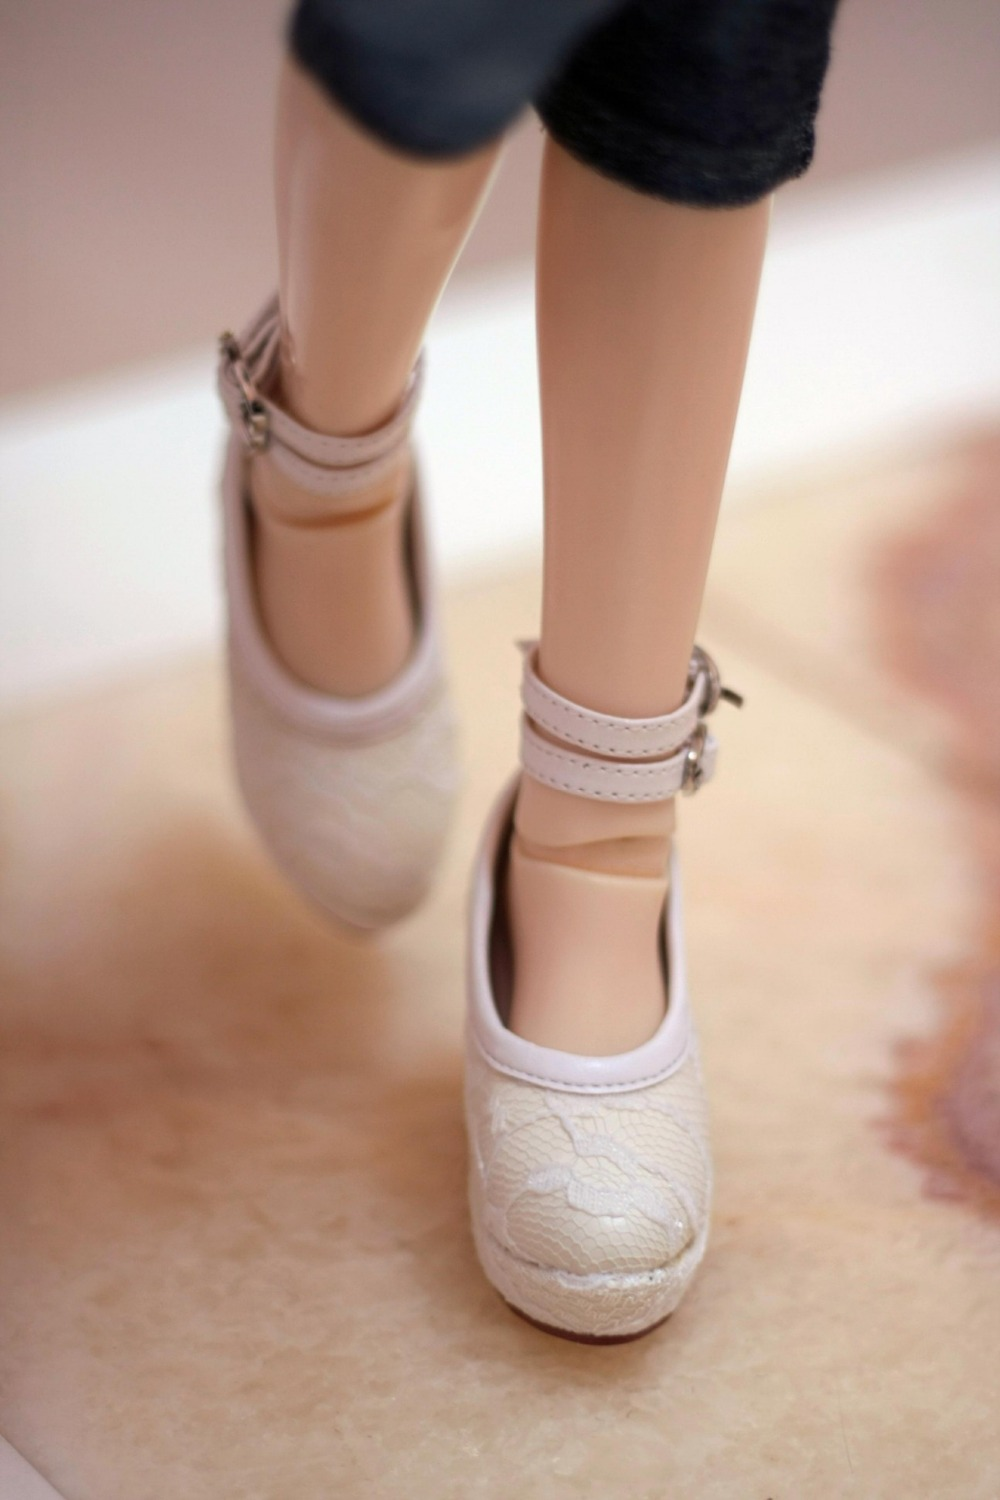 BJD  doll shoes Doll accessories white lace shoes 1/3 SD13 SD10 size